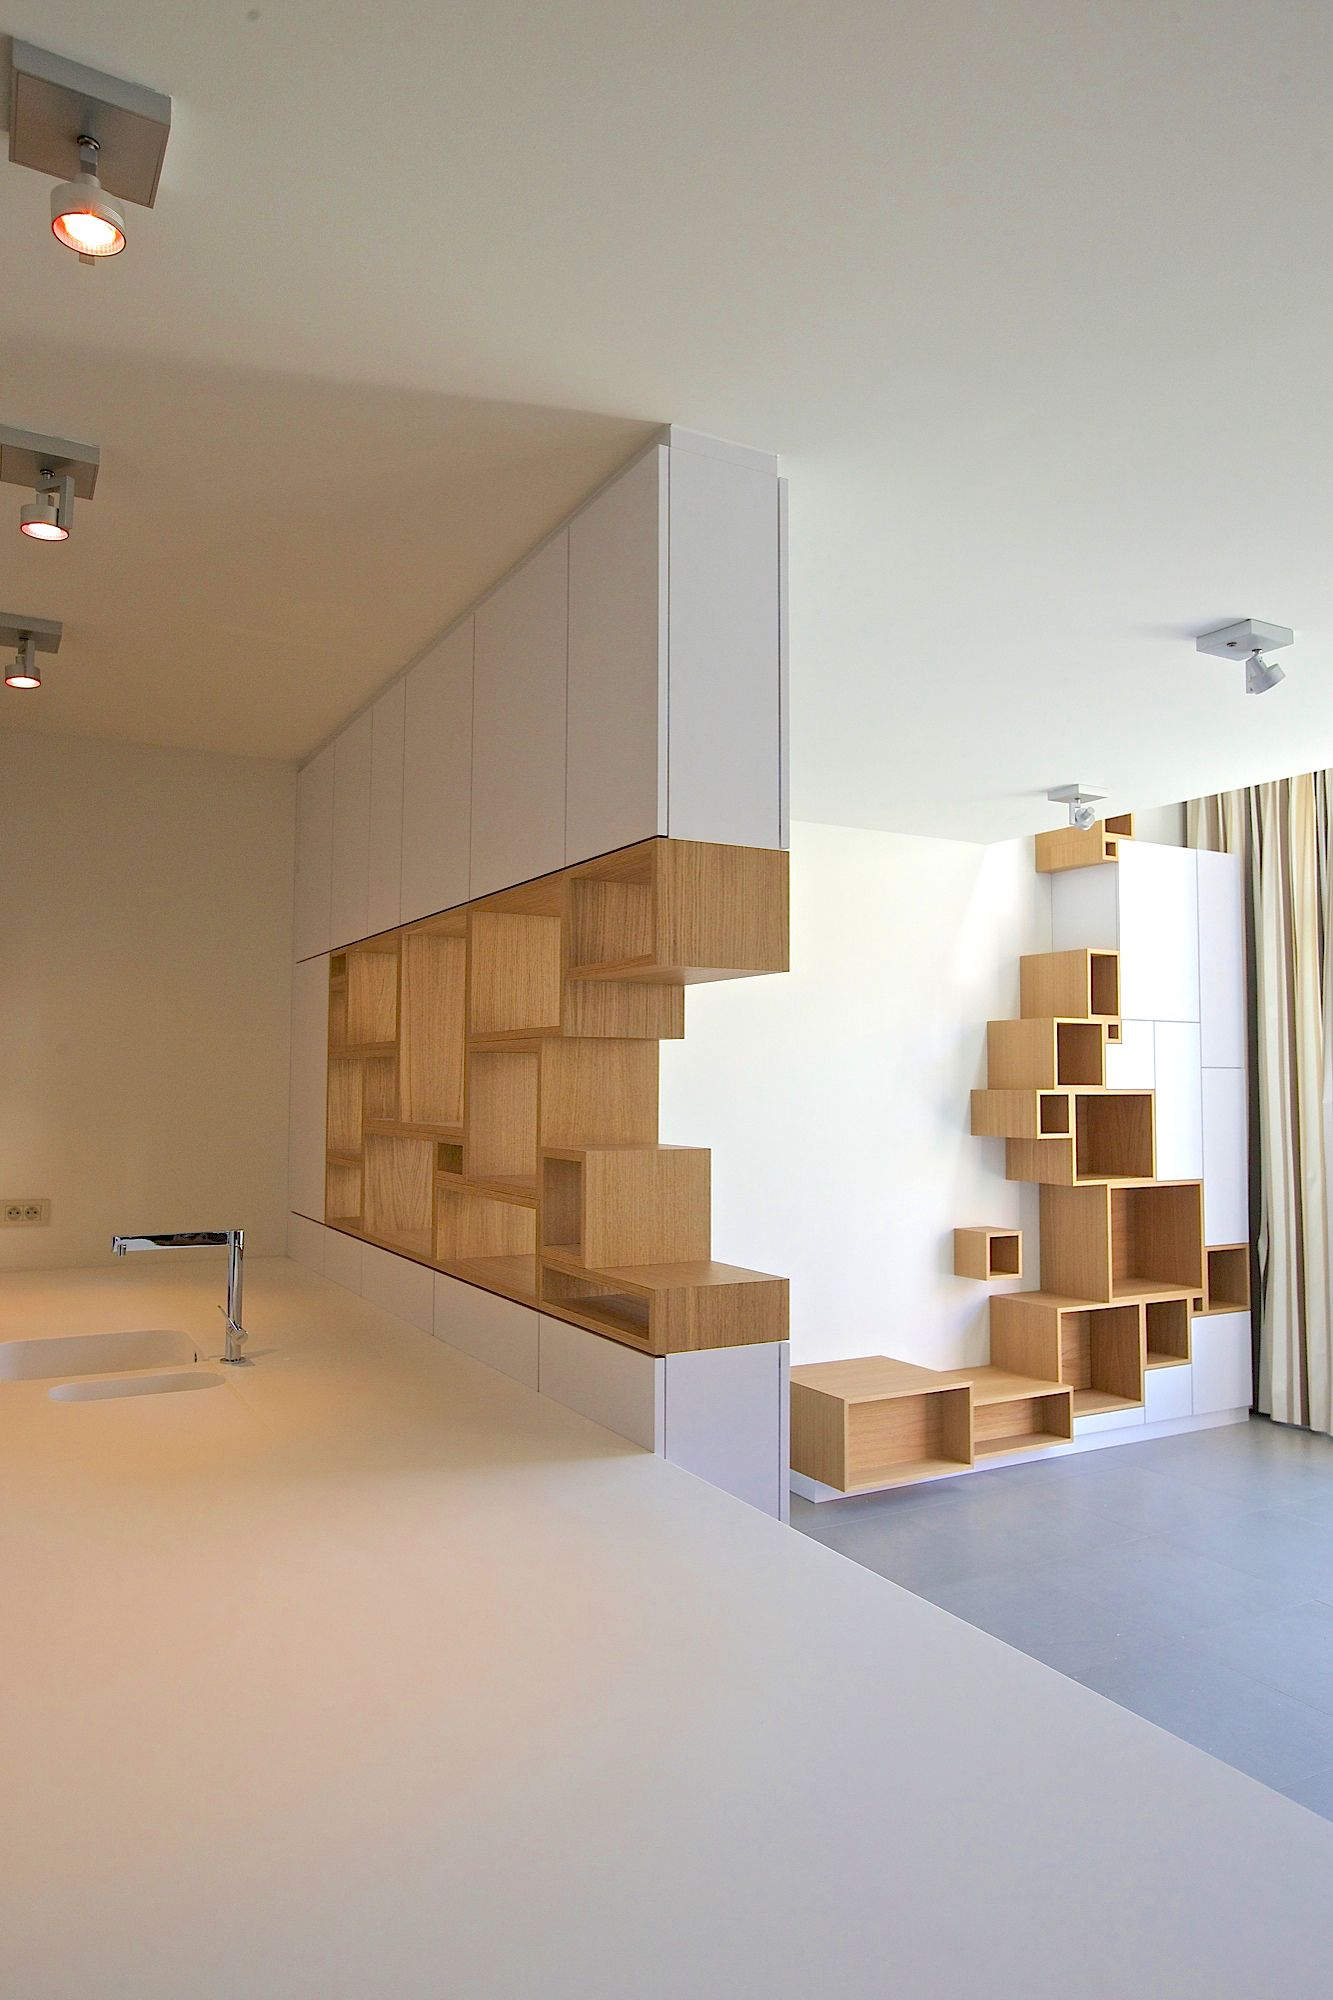 Innenarchitektur für schlafzimmer-tv-einheit filip janssens keken eikg  living room wall  pinterest